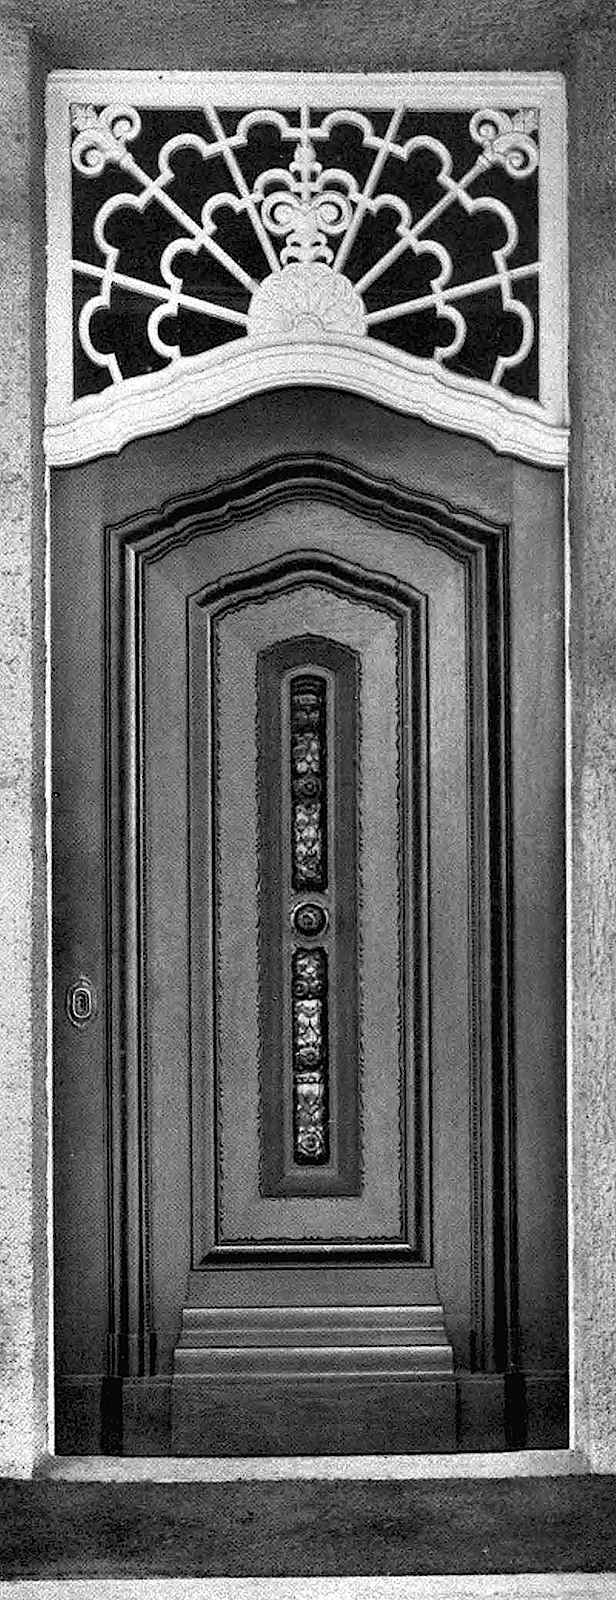 German 1912: a knob in  the center would still  allow the door to swing